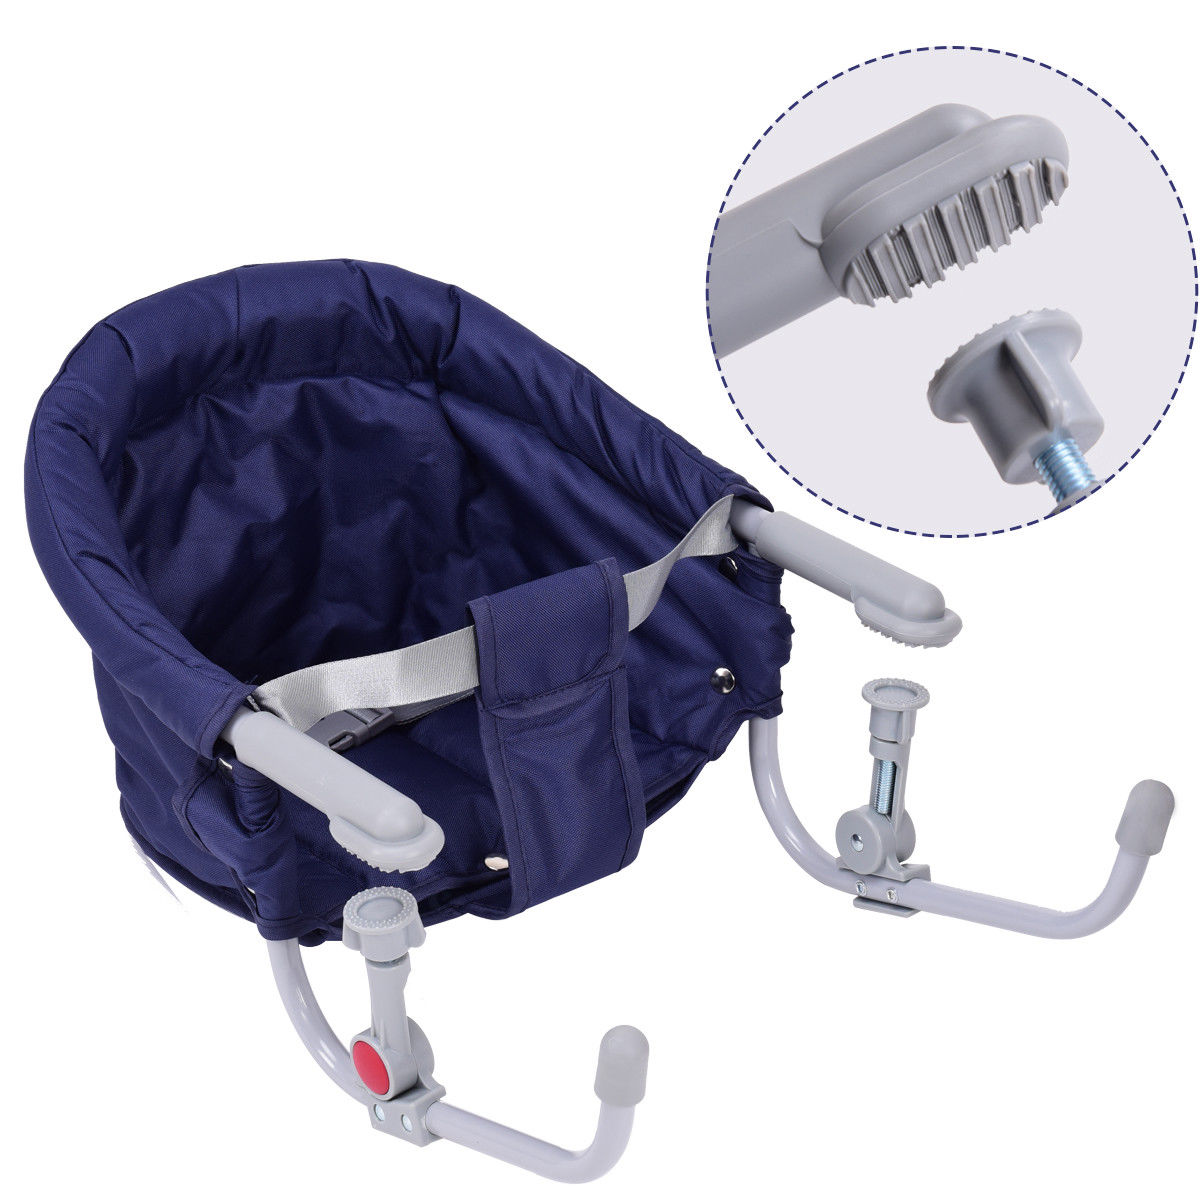 Gymax Blue Foldable Baby Hook On Chair Booster Fast Table Chair Portable Carrying Bag